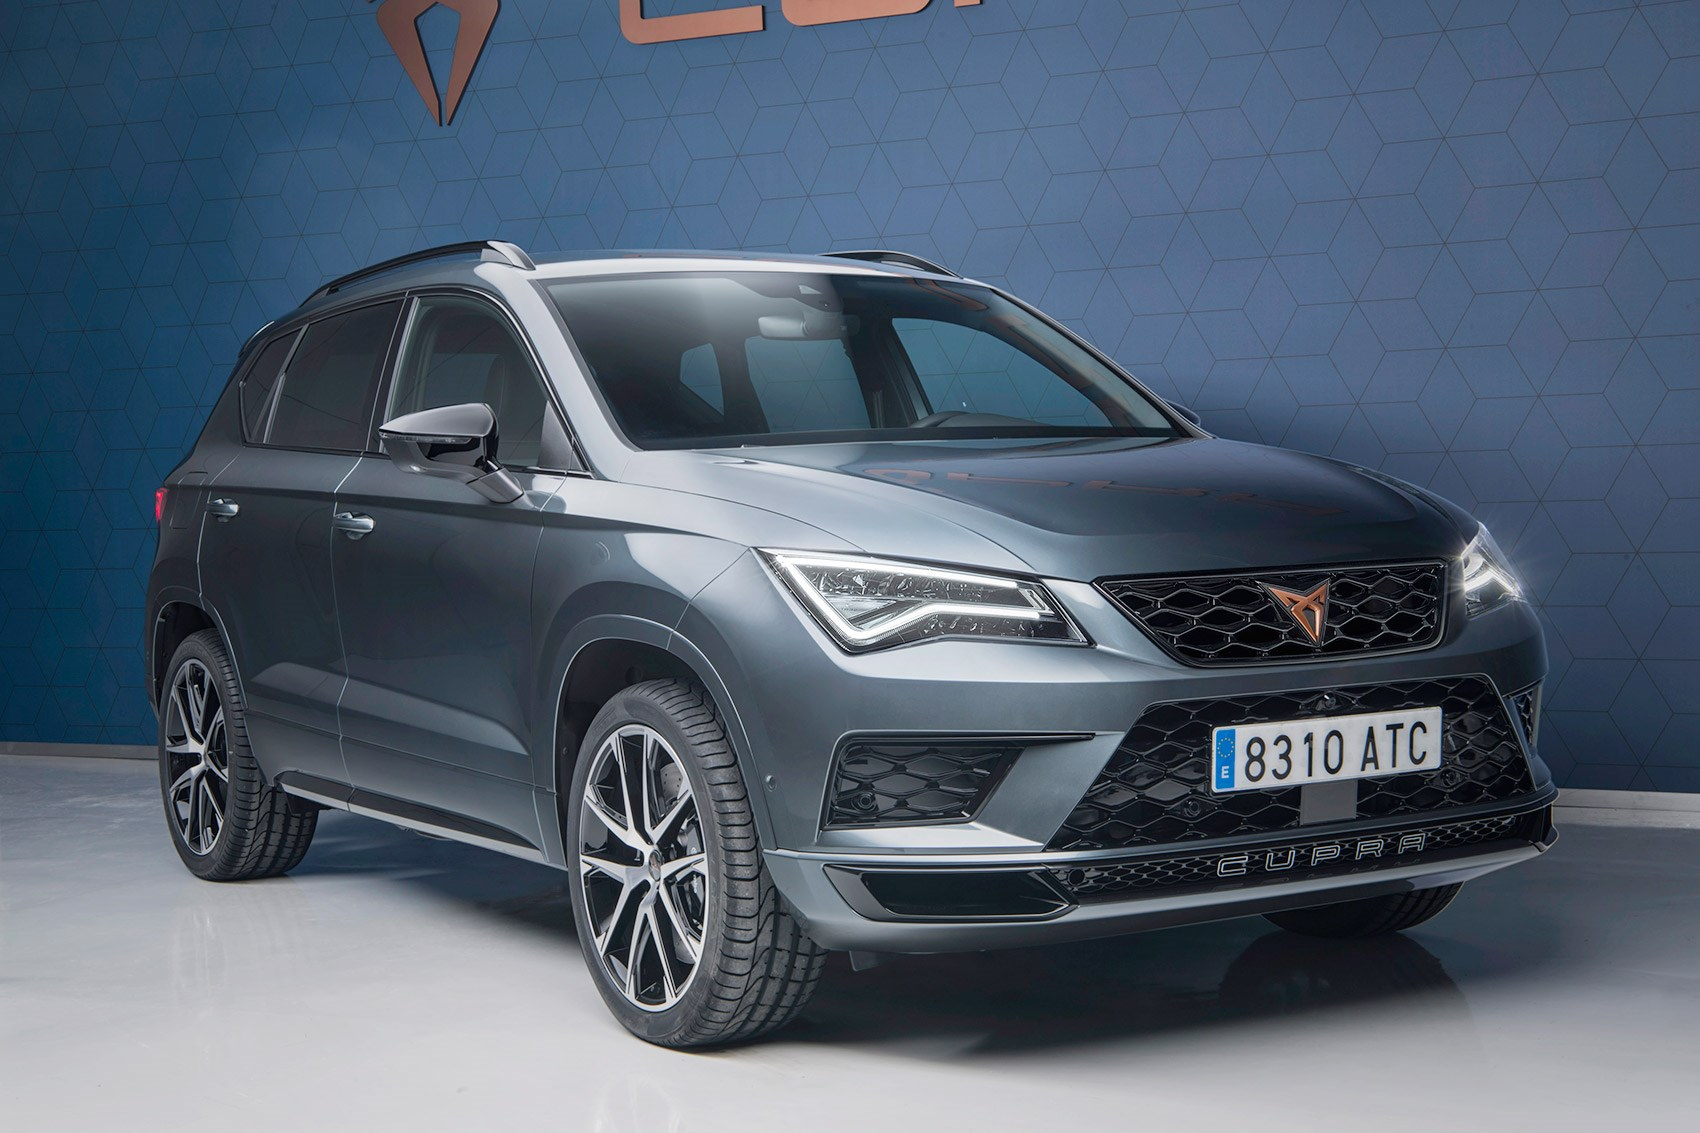 Tesla >> Cupra Ateca SUV: news, photos, prices, specs, on sale date | CAR Magazine